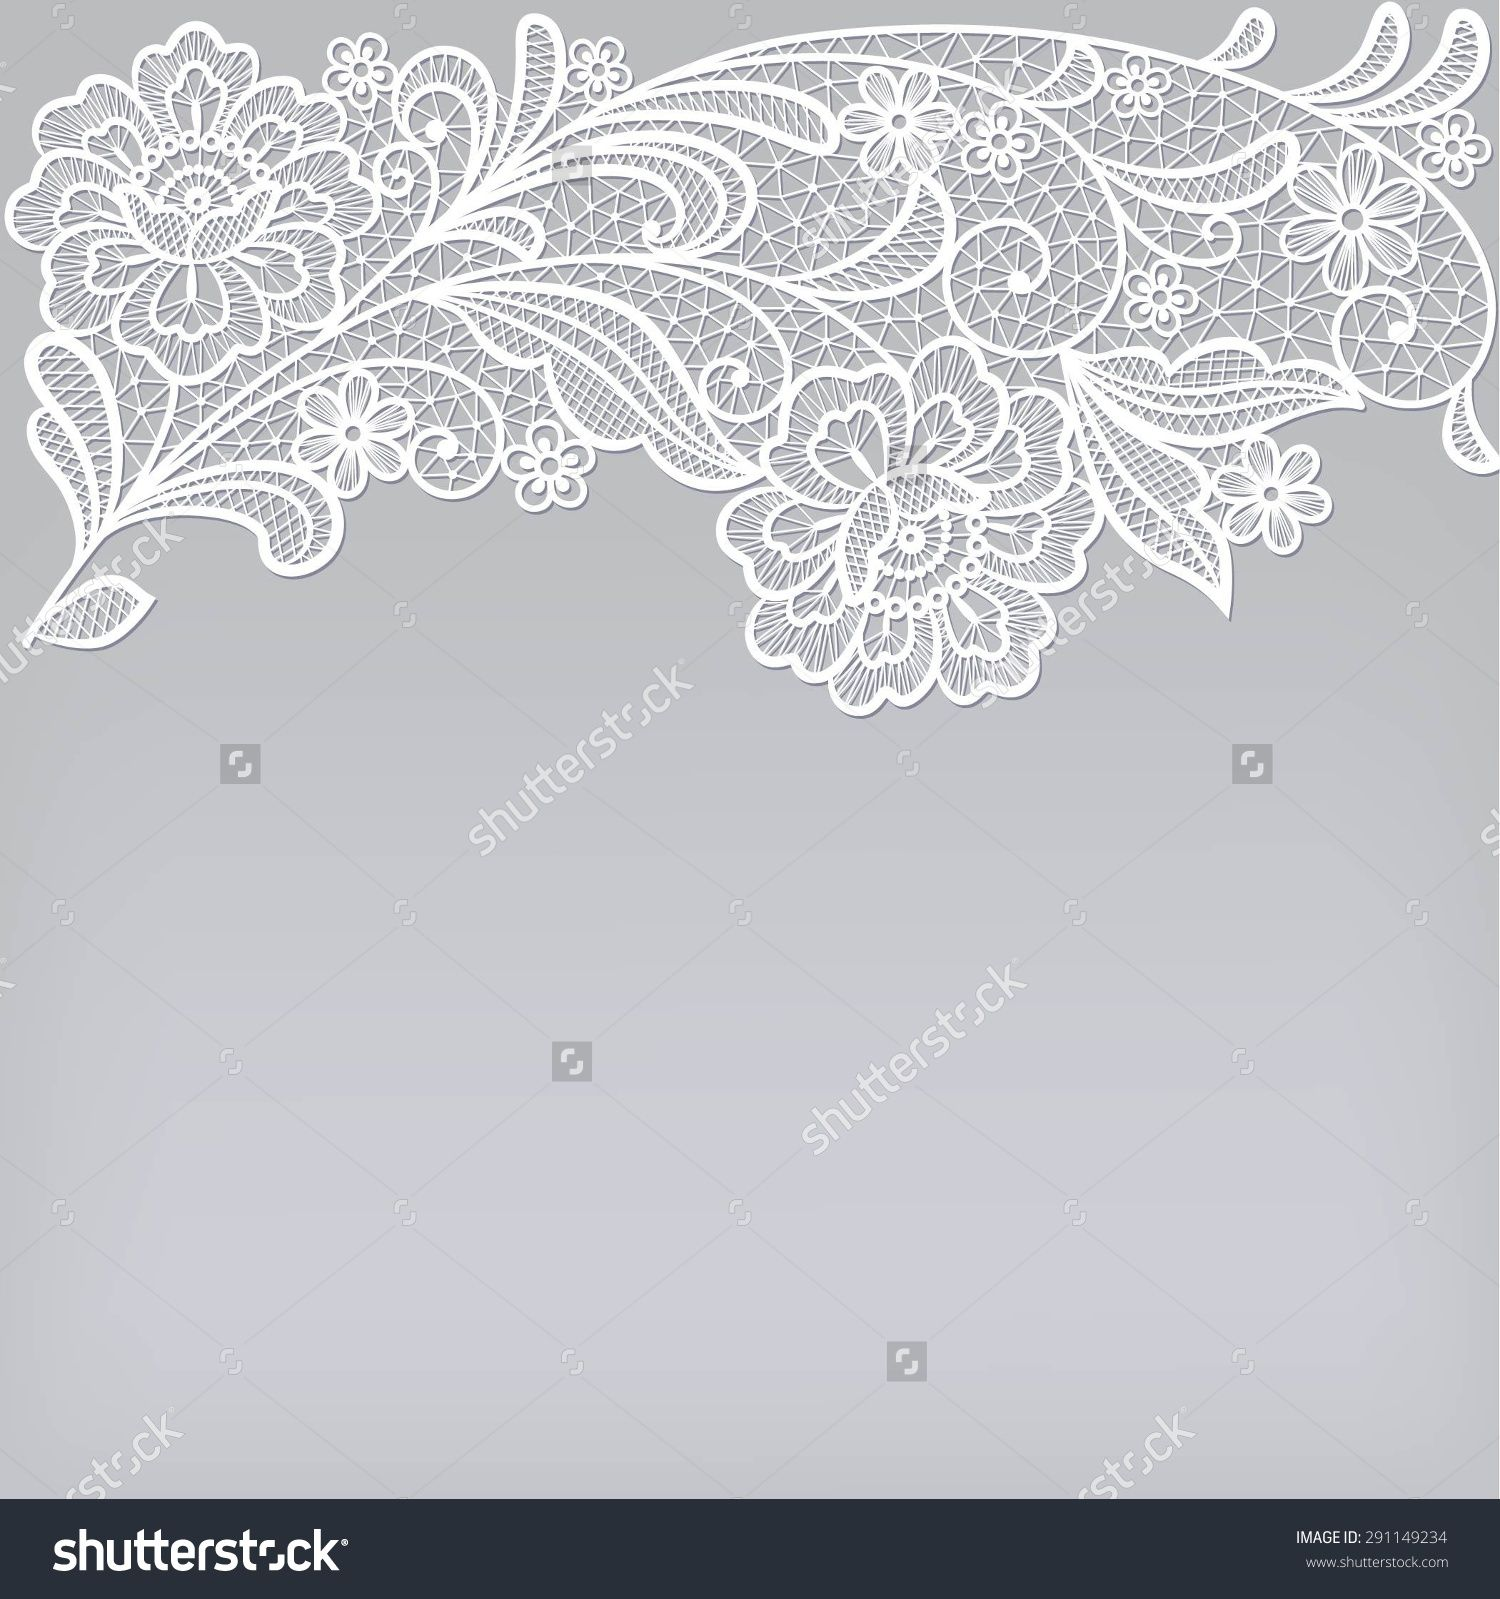 Template frame design for greeting card stock vector illustration template frame design for greeting card stock vector illustration 291149234 shutterstock kristyandbryce Choice Image